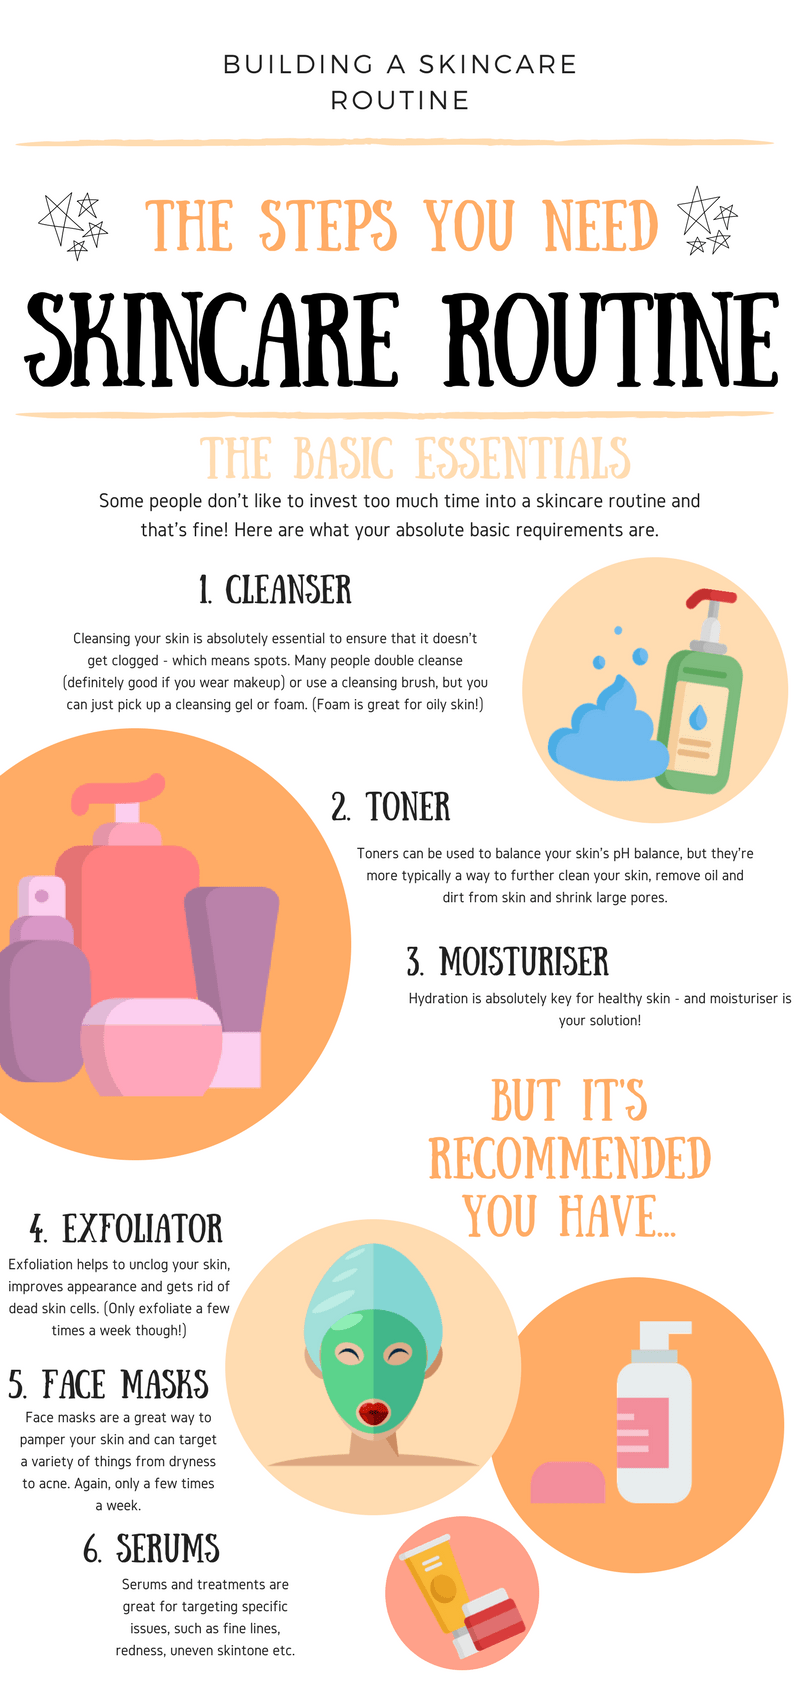 Skincare Routine INFOGRAPHIC - How To Build A Skincare Routine